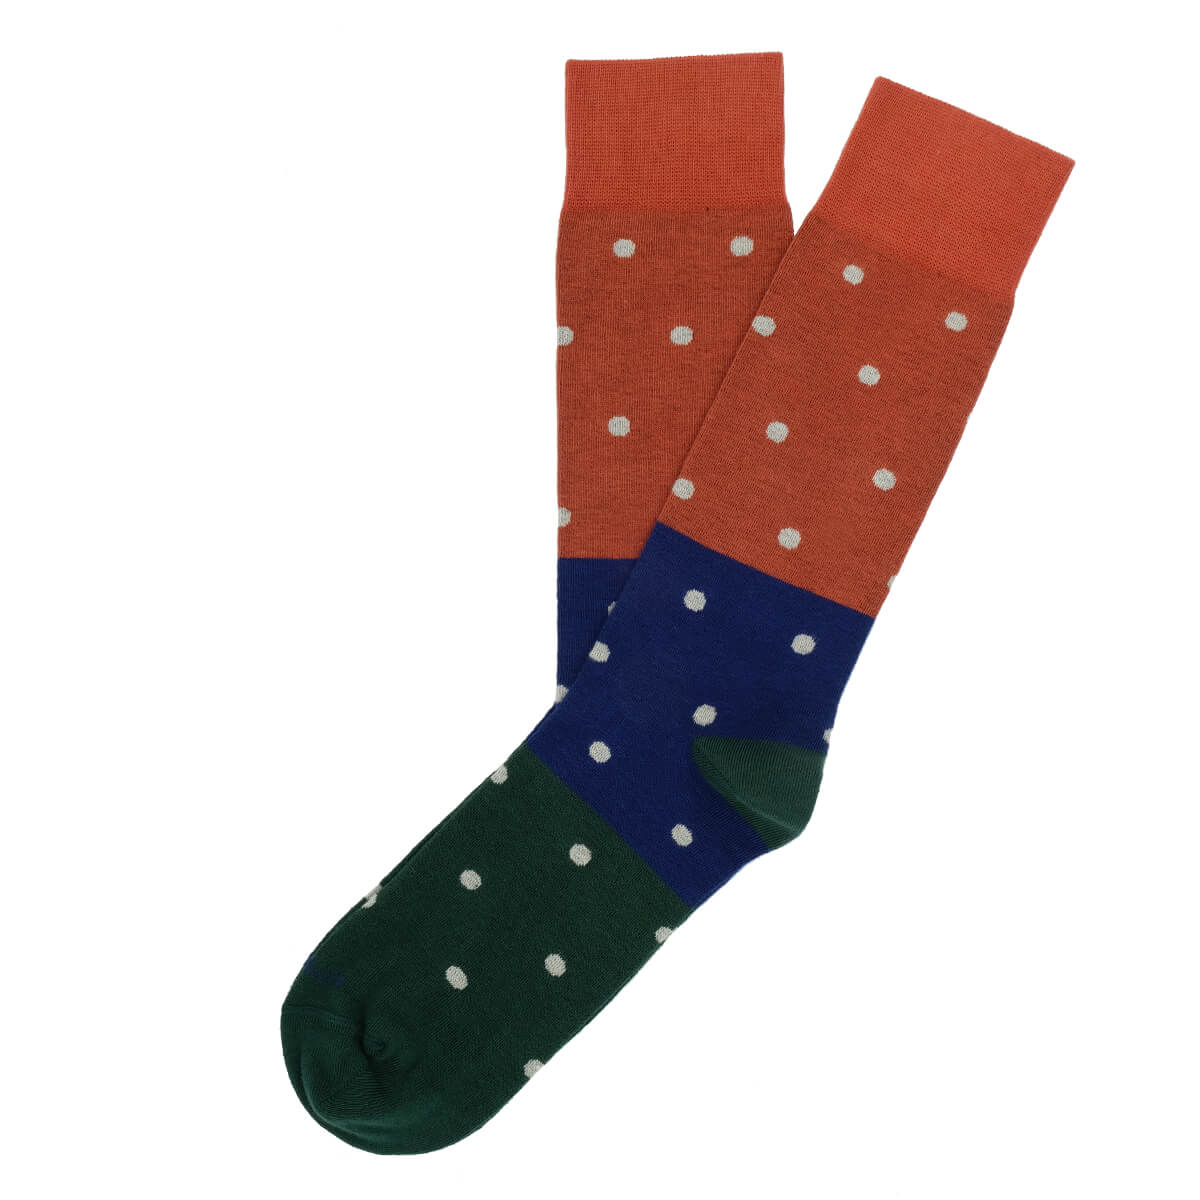 Mens Socks - Tri Polka Men's Socks - Orange⎪Etiquette Clothiers